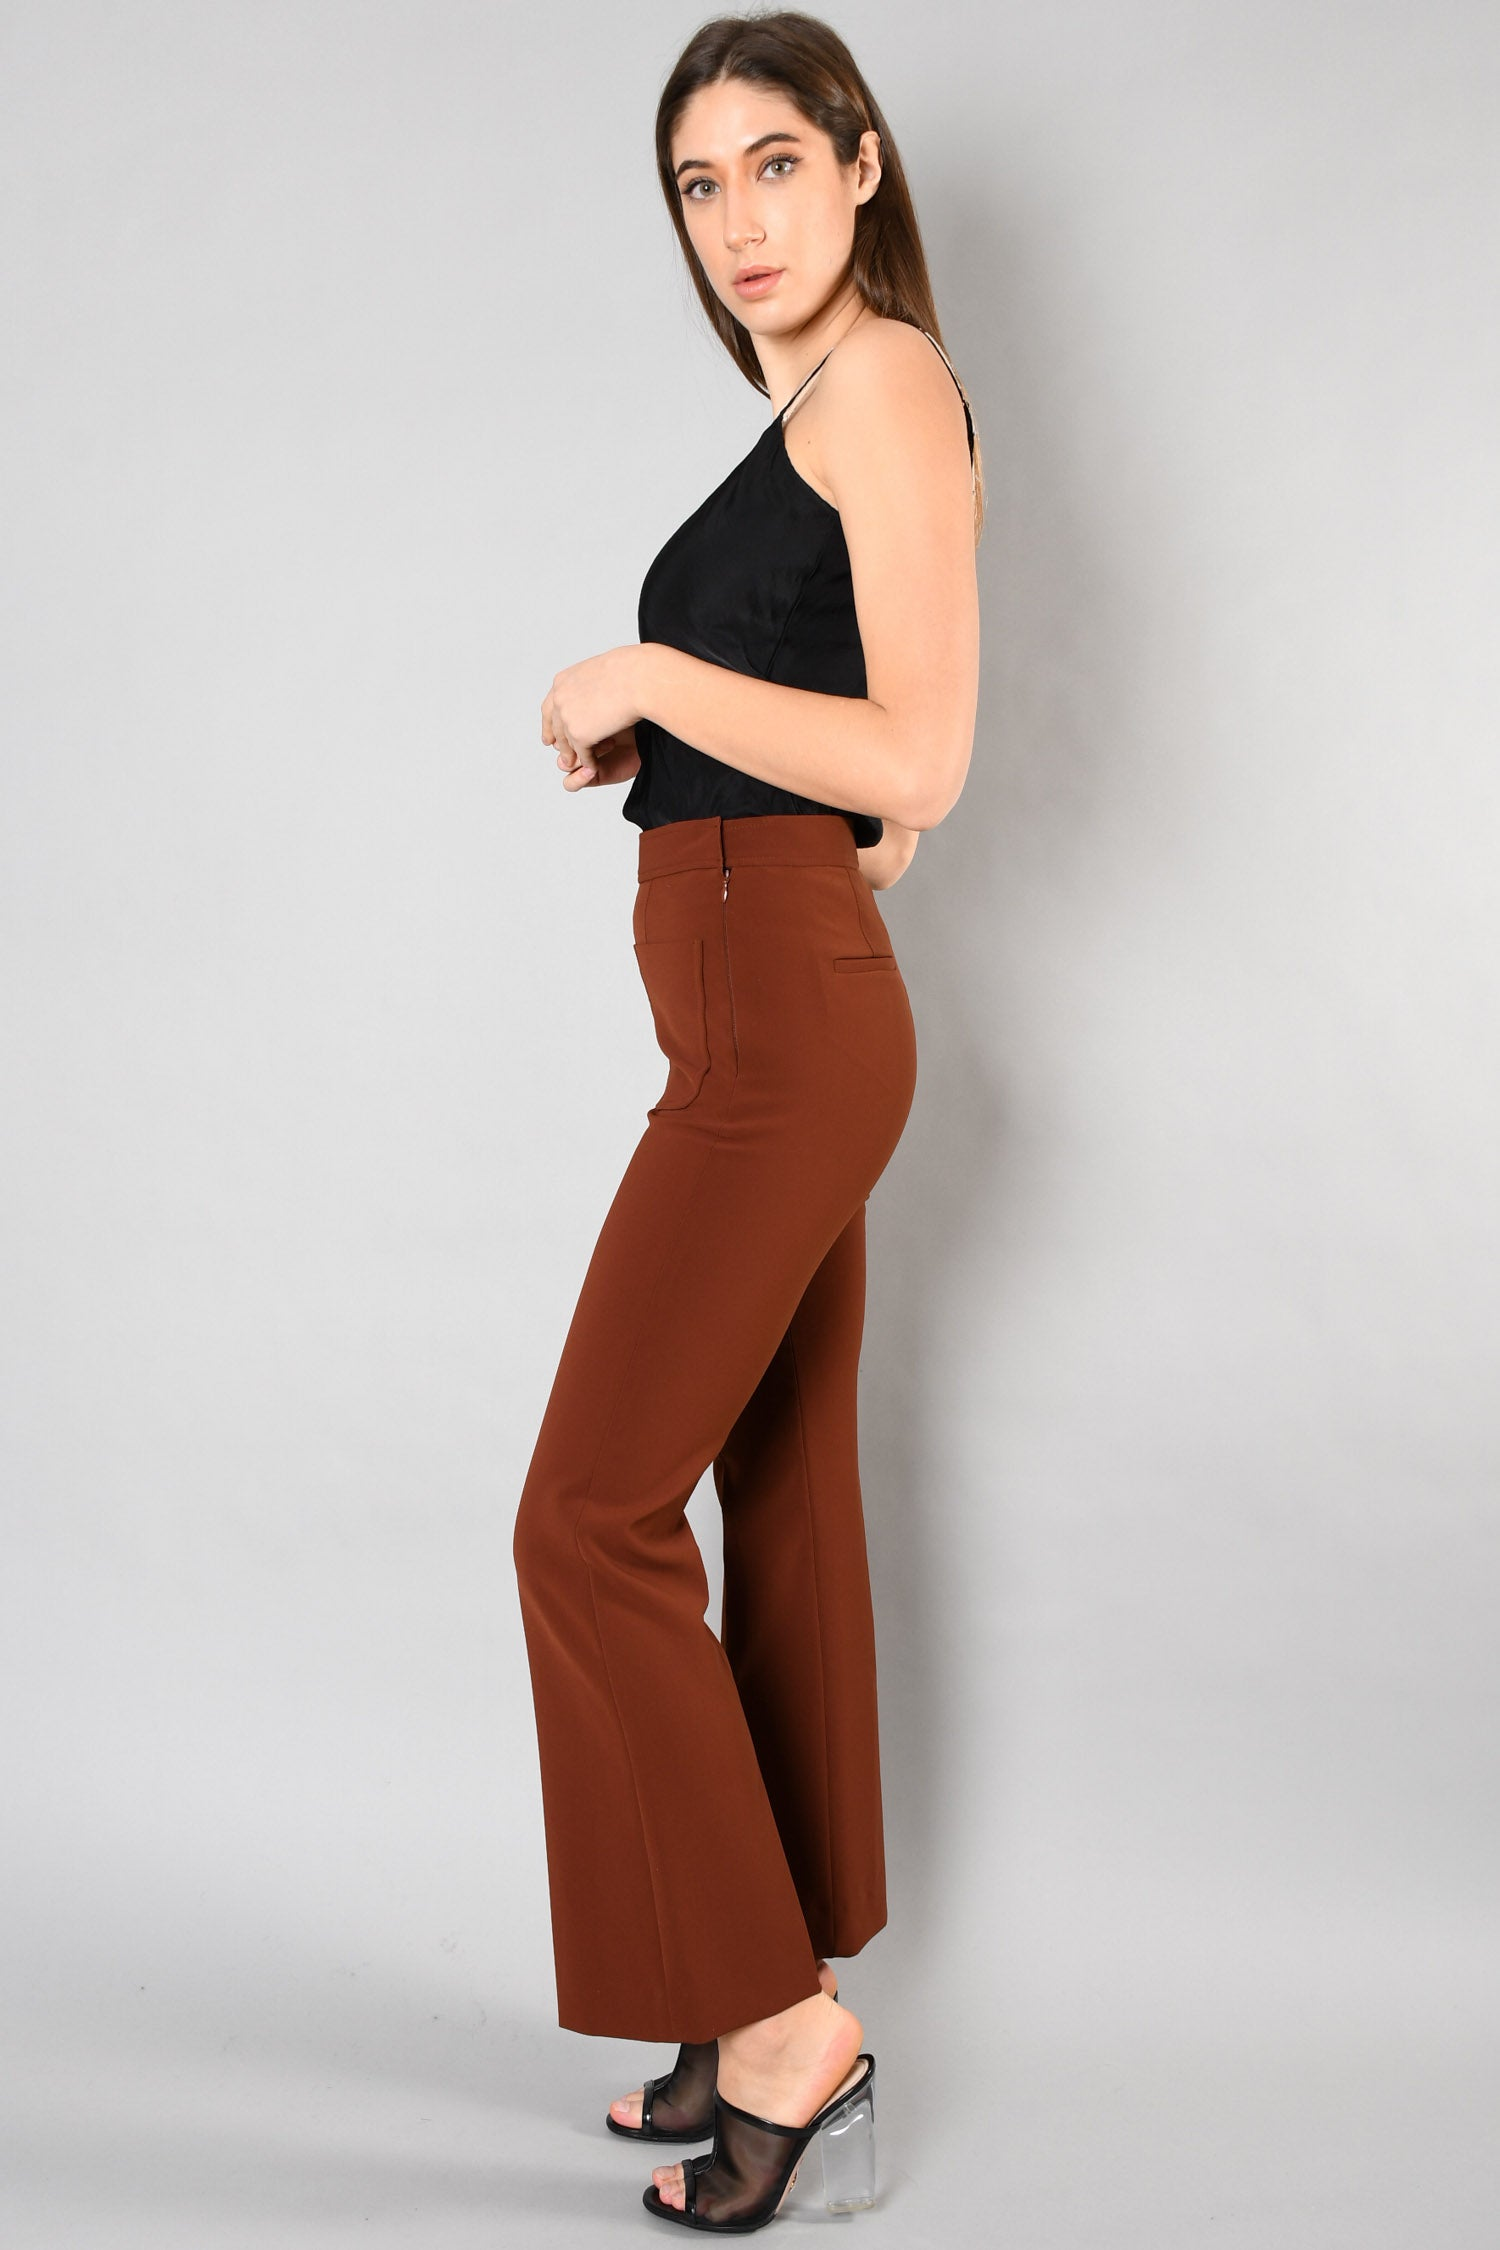 Sandro Brick Red Flared Tailored Pants Size 36